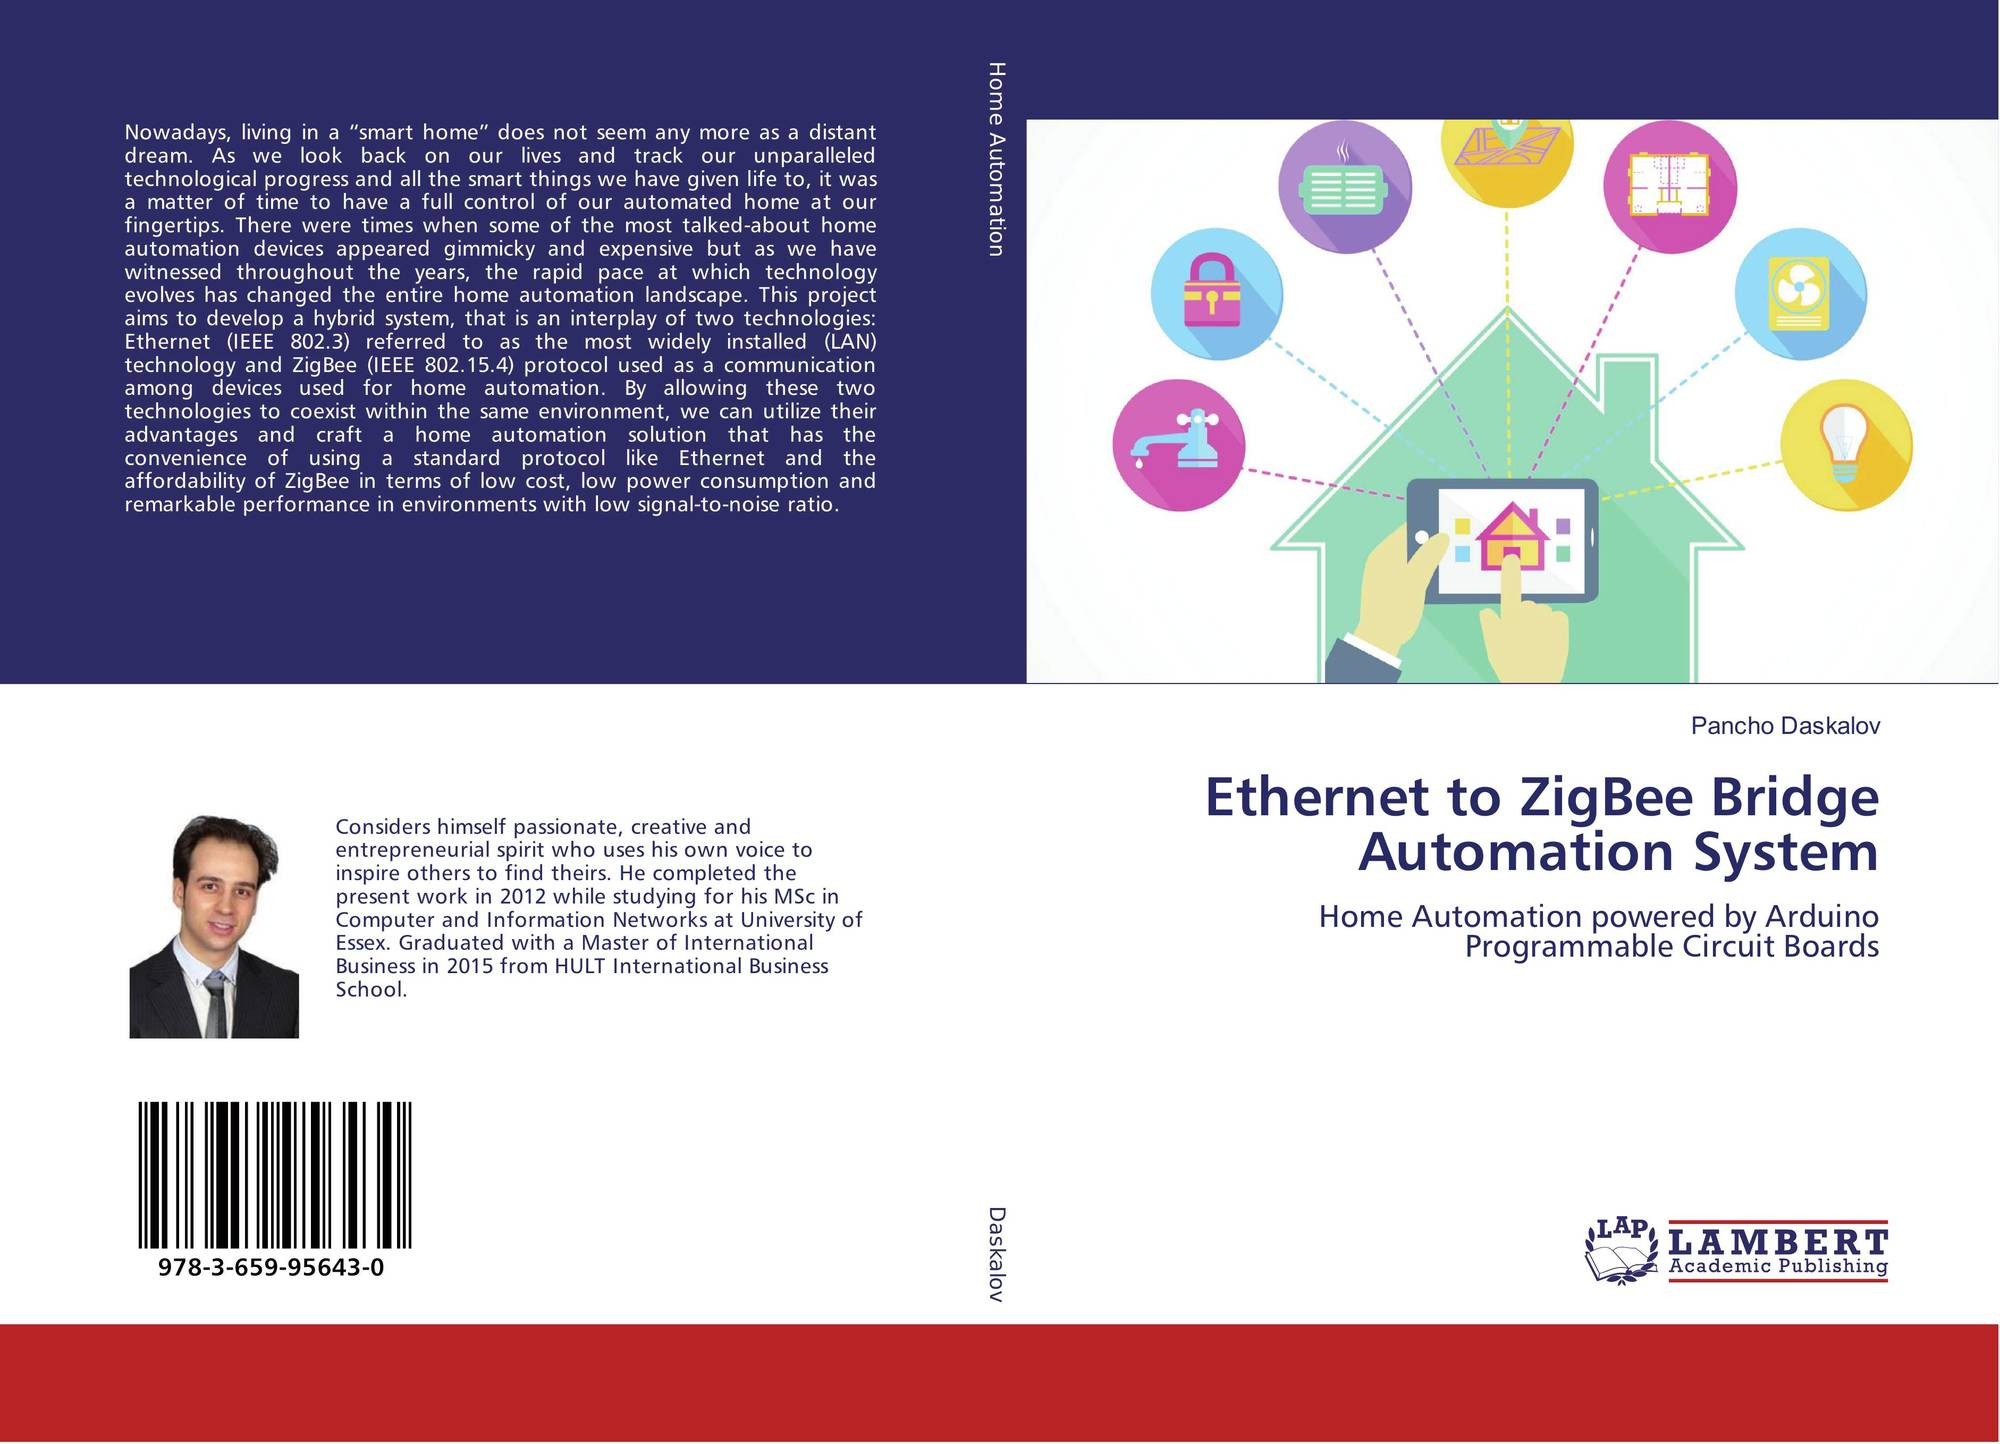 Ethernet to zigbee bridge automation system